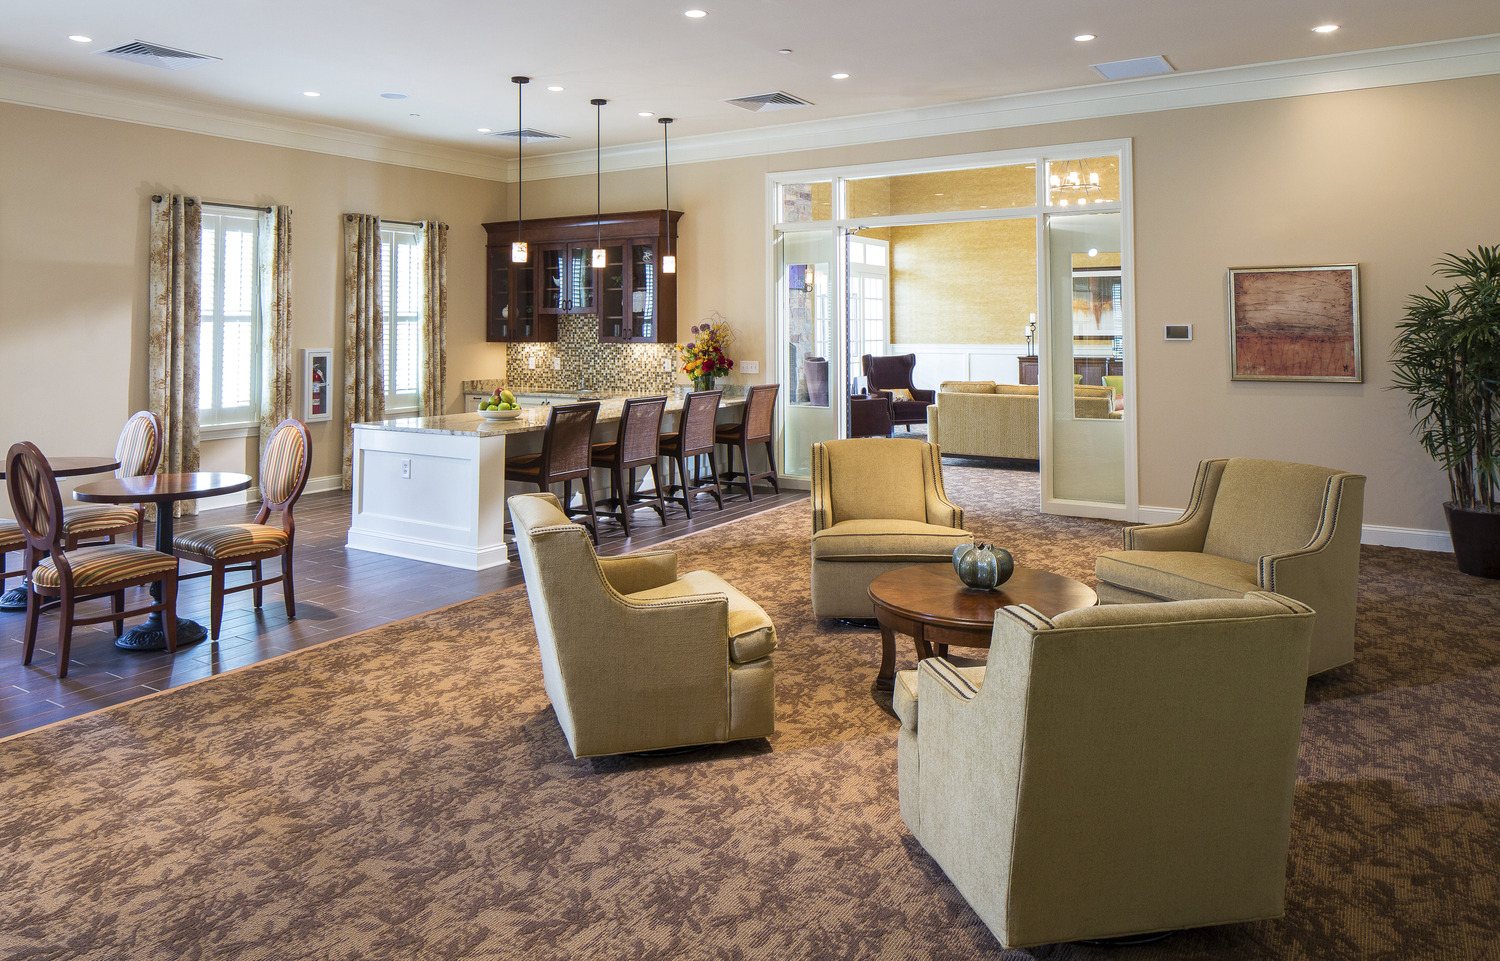 CBG builds Paragon at Columbia Overlook, a 320 Market-Rate Apartment Homes in Elkridge, MD - Image #5